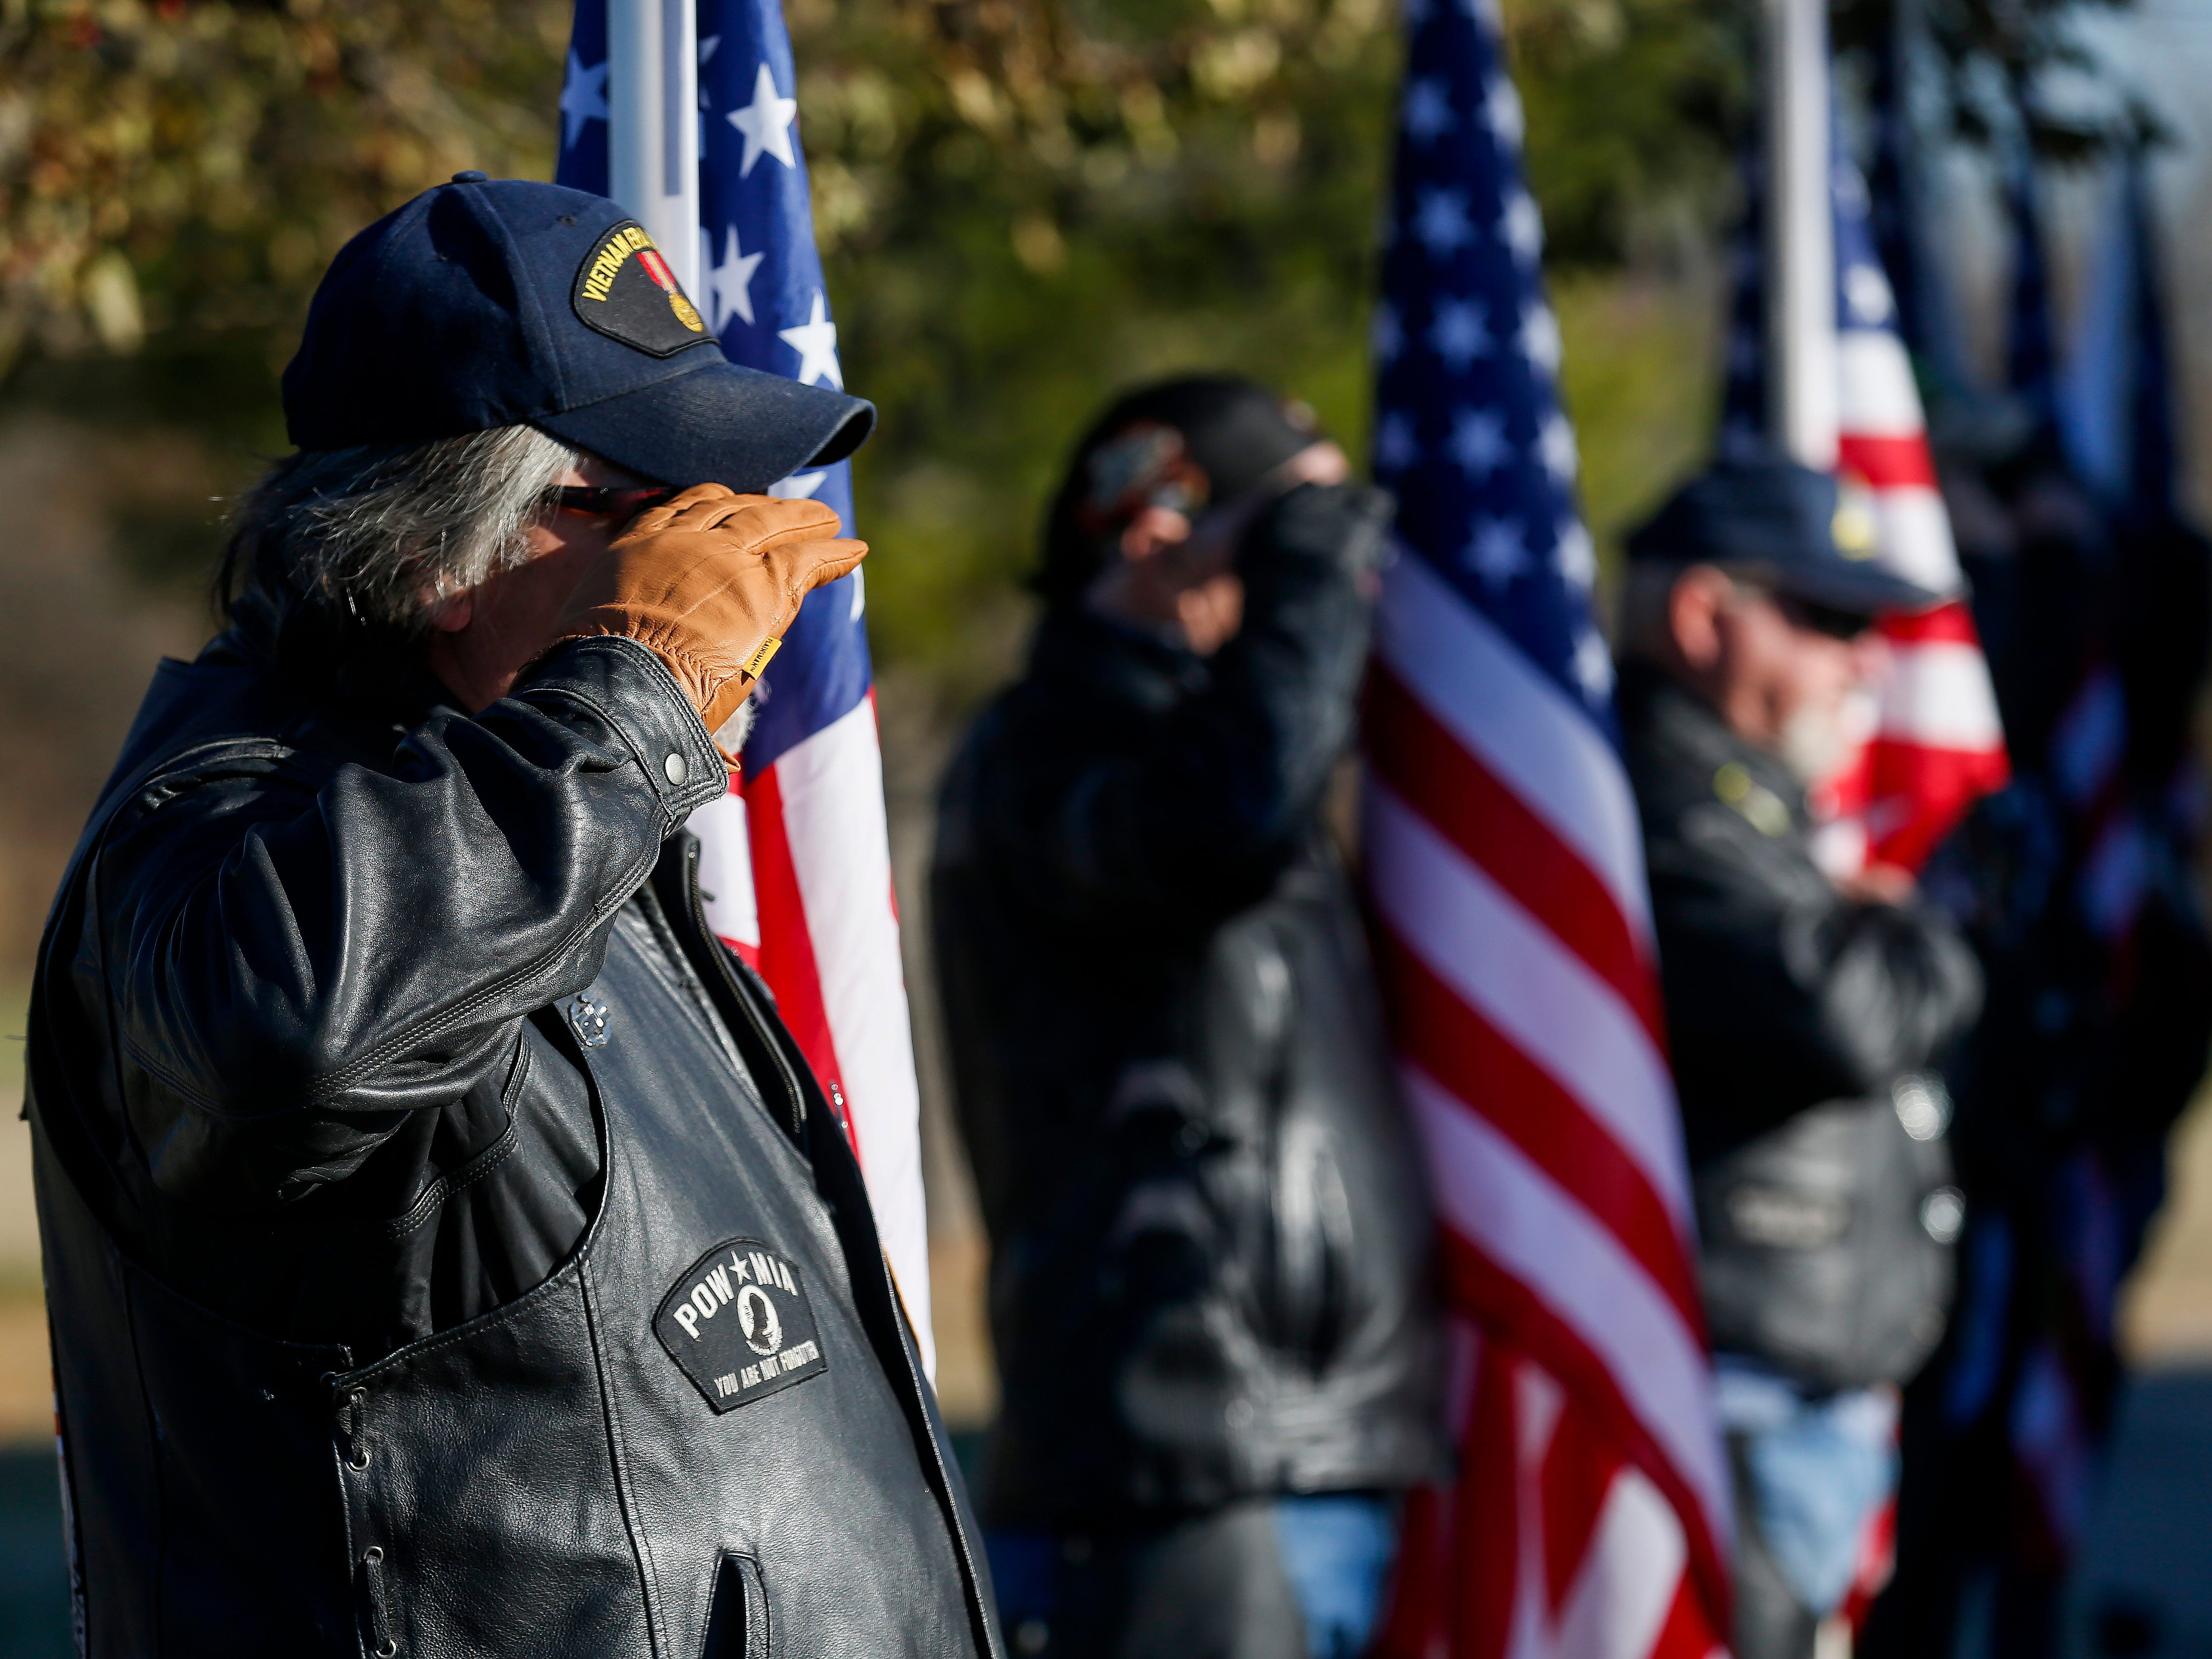 Paul McGuire, left, a member of the Patriot Guard Riders, renders a salute during the funeral of Army veteran Michael Hiers at the Missouri Veterans Cemetery on Friday, Nov. 16, 2018.